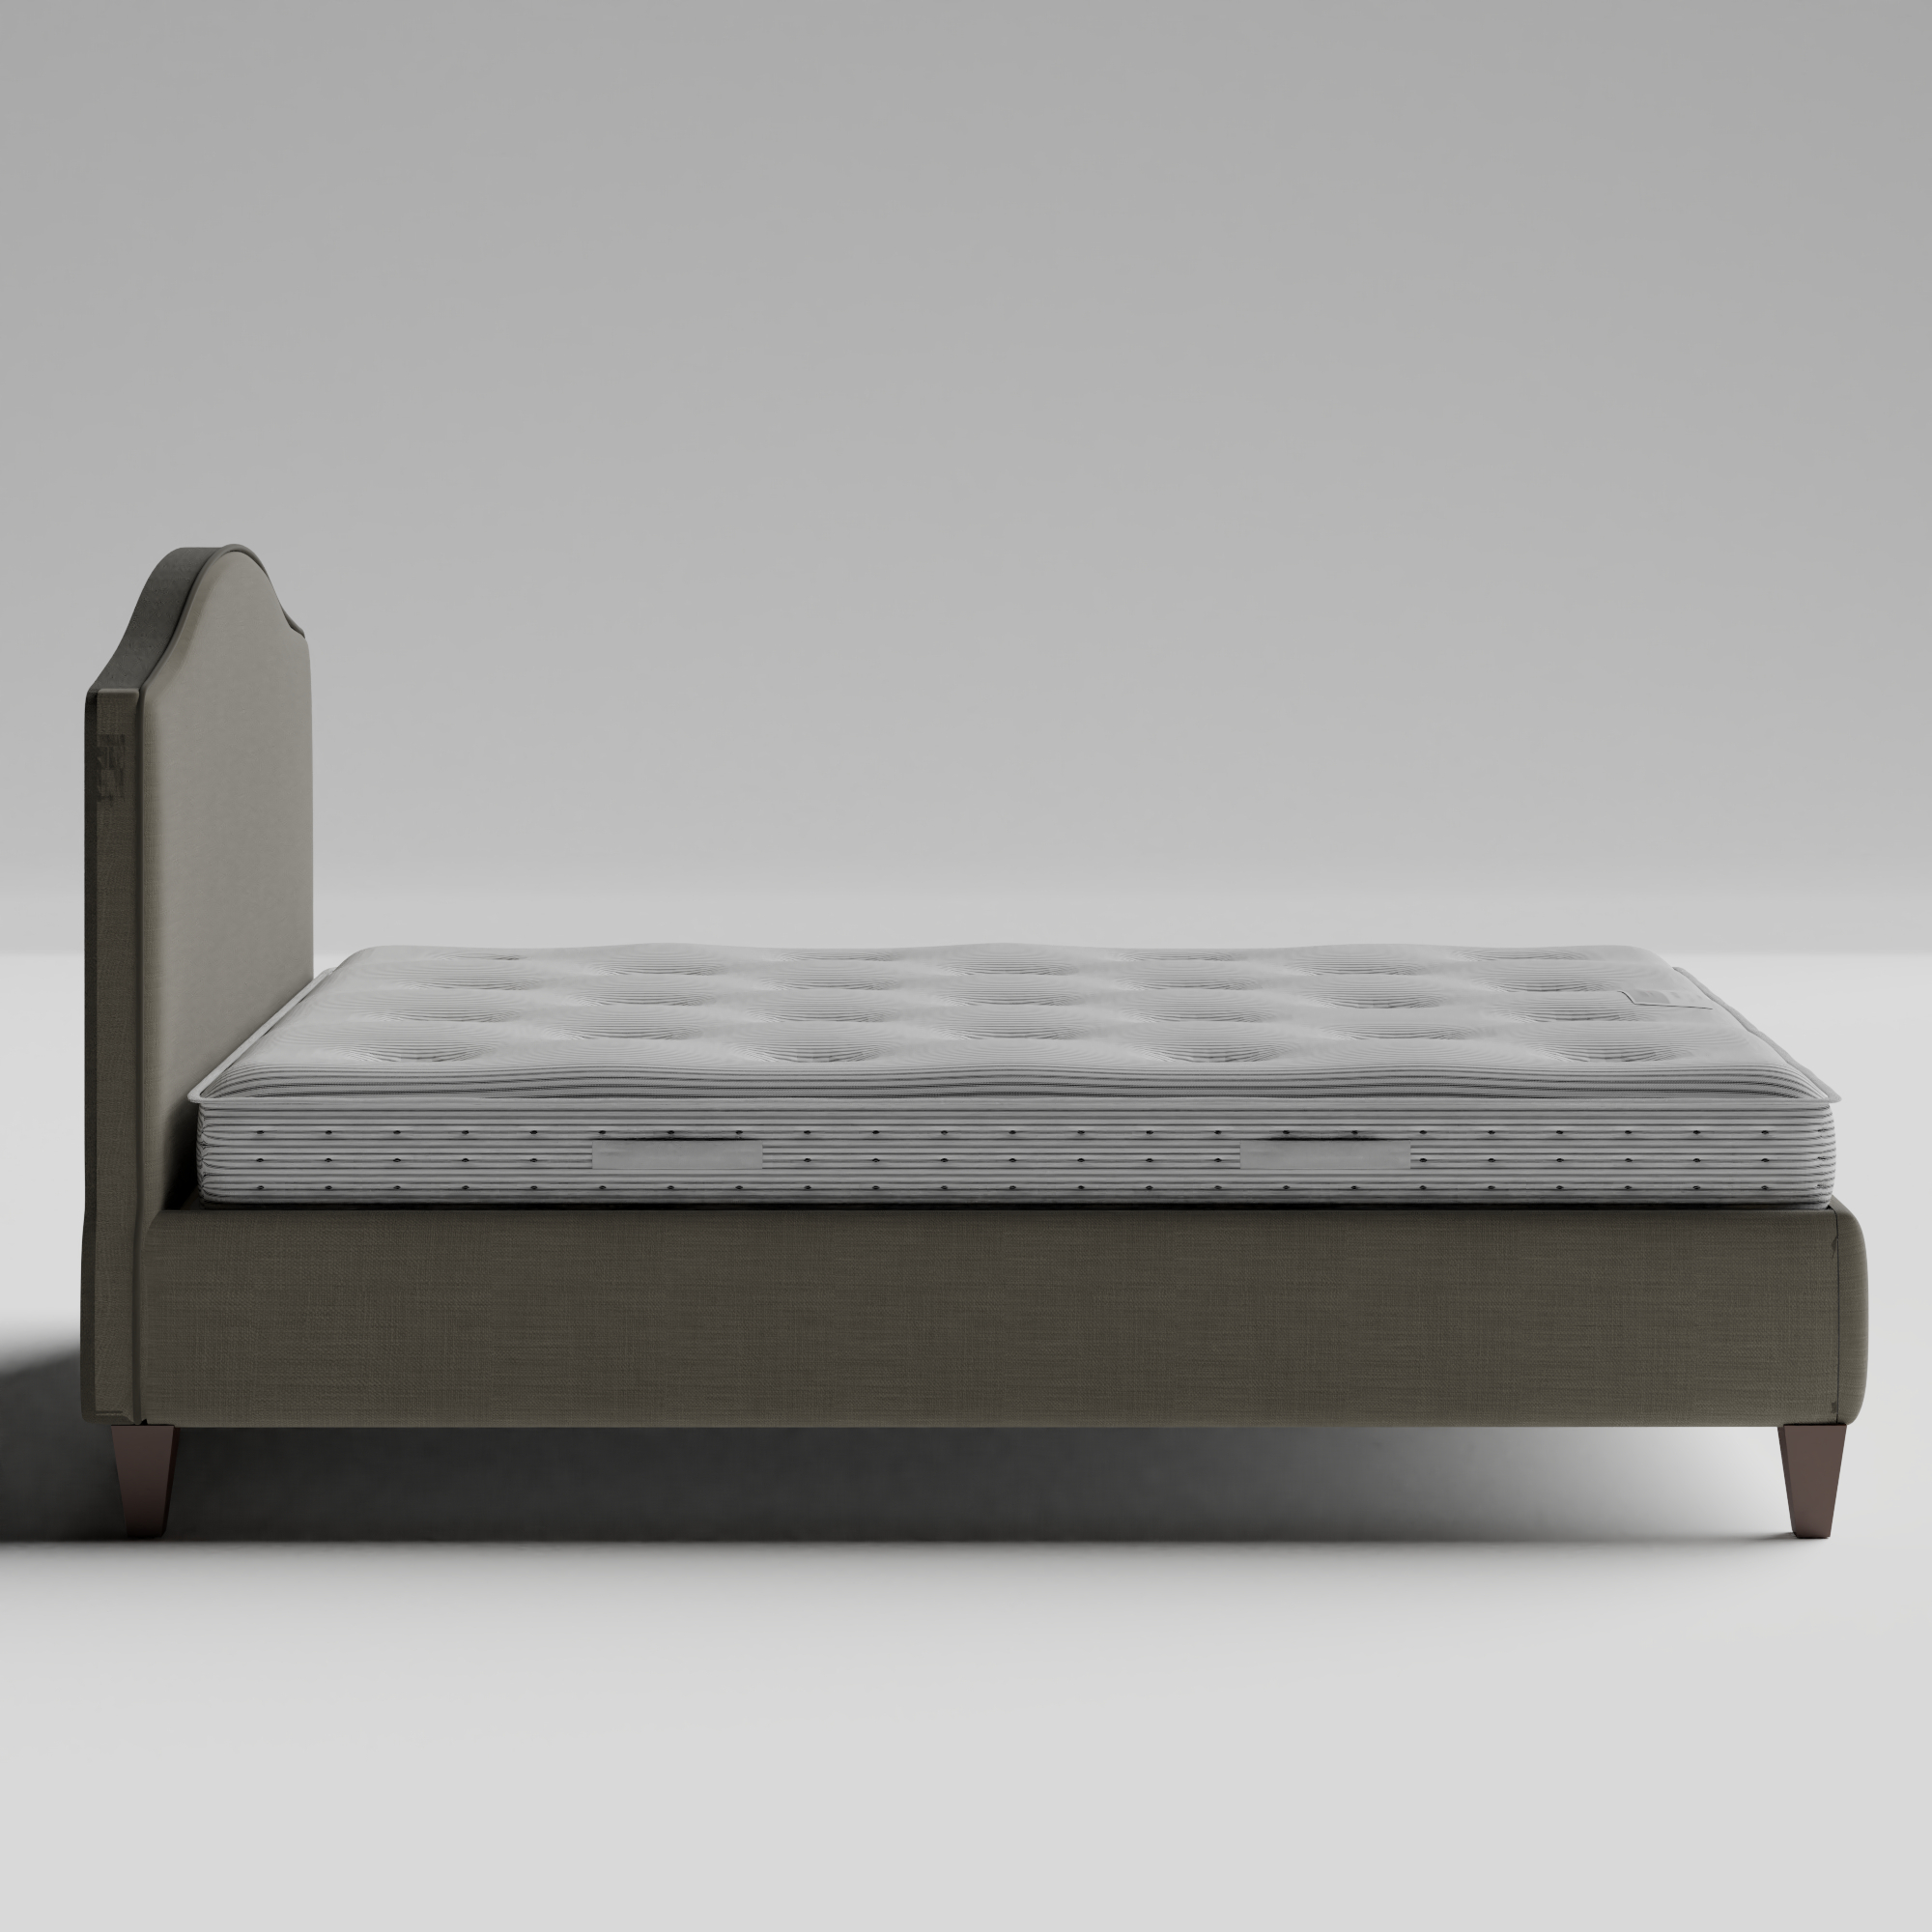 Daniella with Piping upholstered bed in grey fabric with Juno mattress